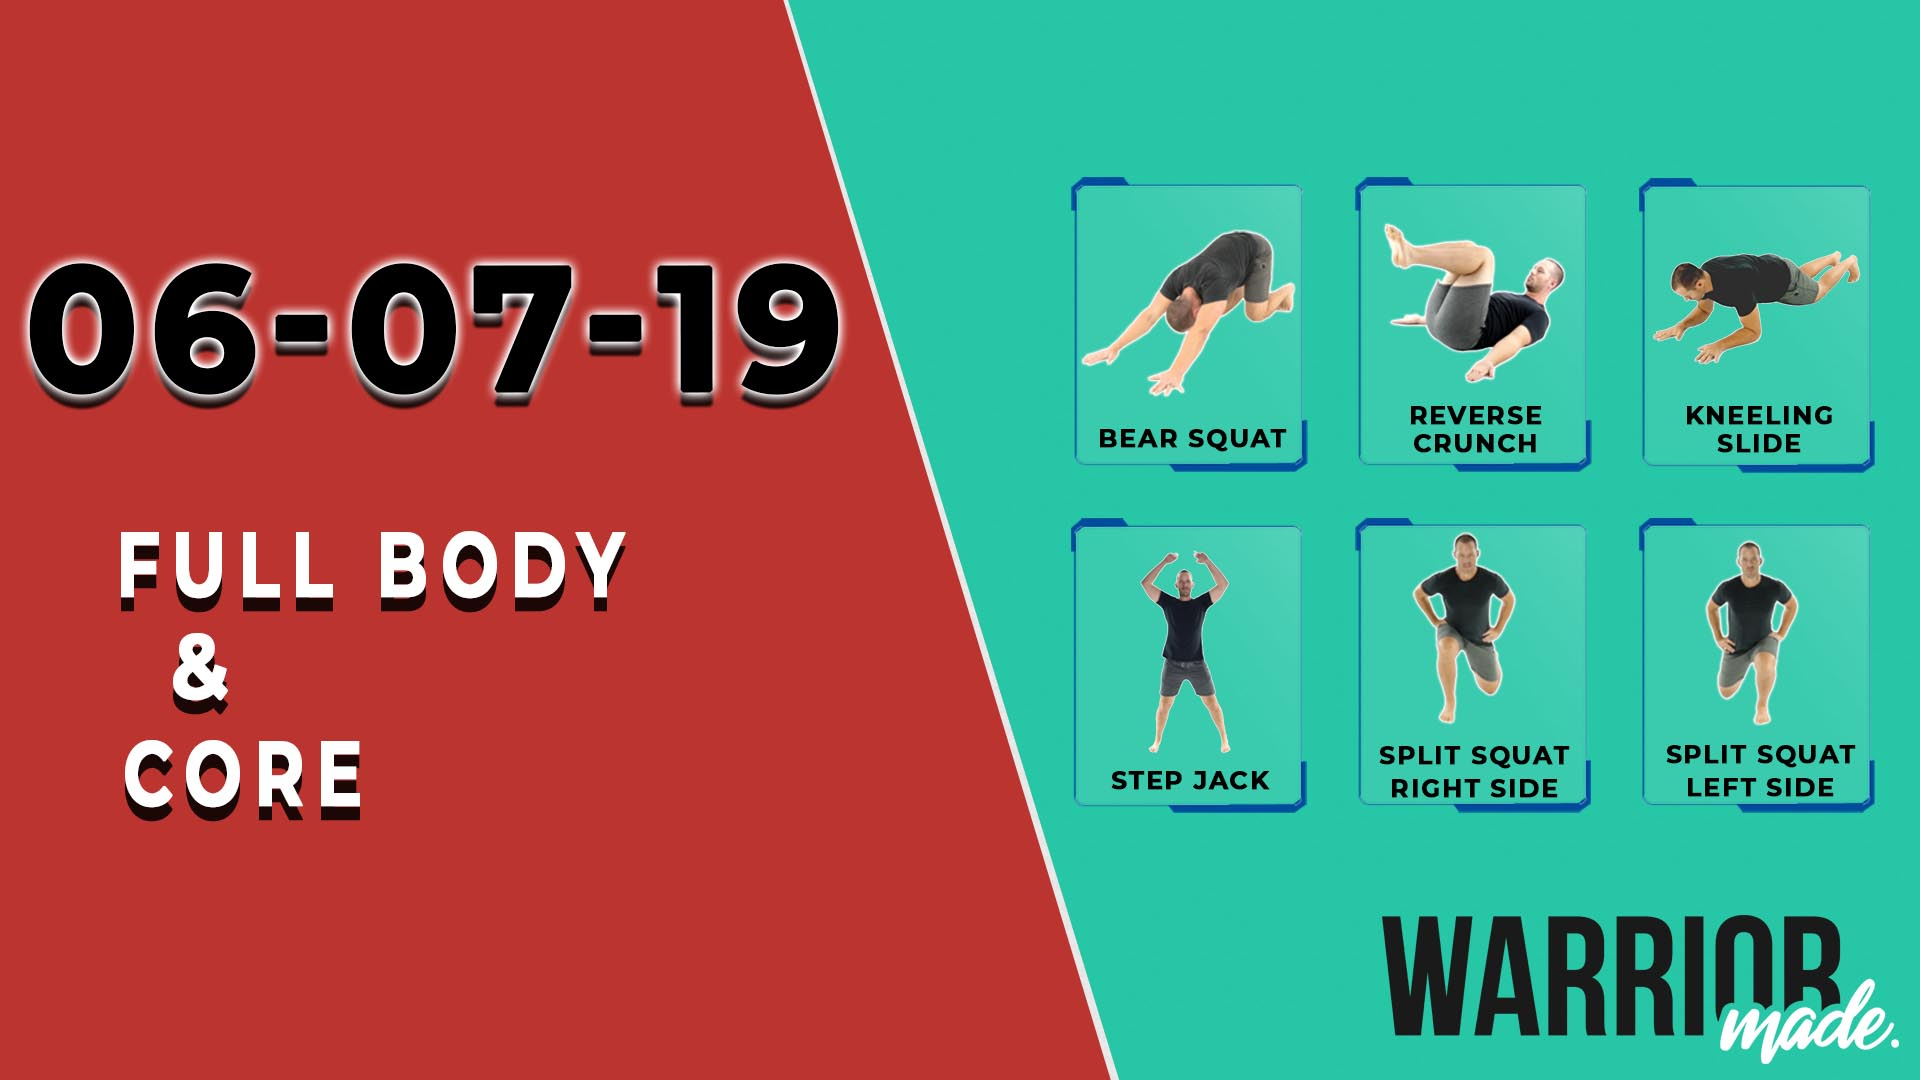 workouts-06-07-19